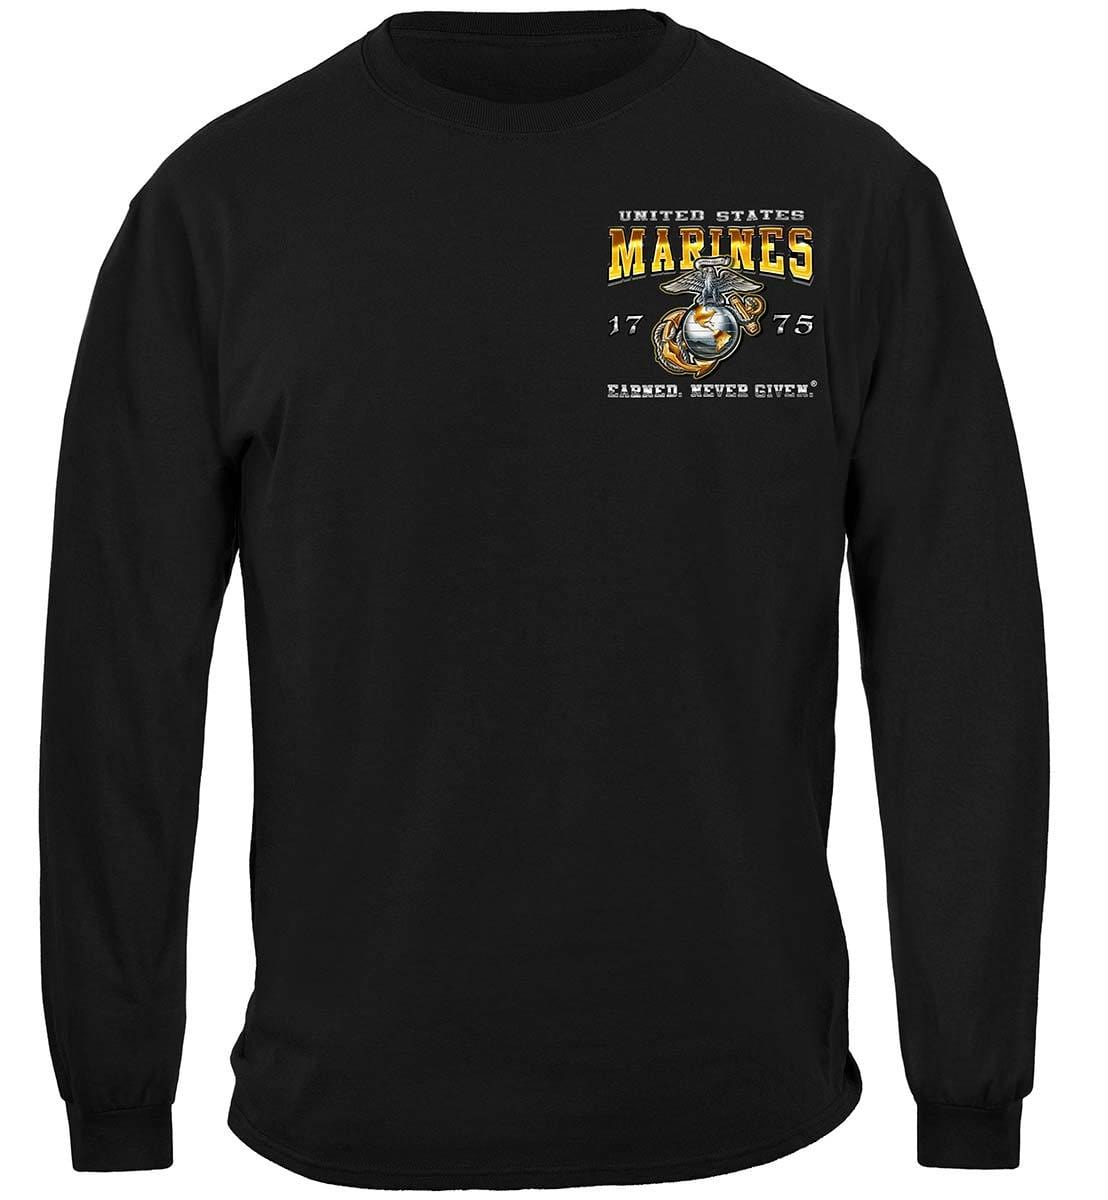 Marine Corps USMC Earned Never Given Premium Long Sleeves